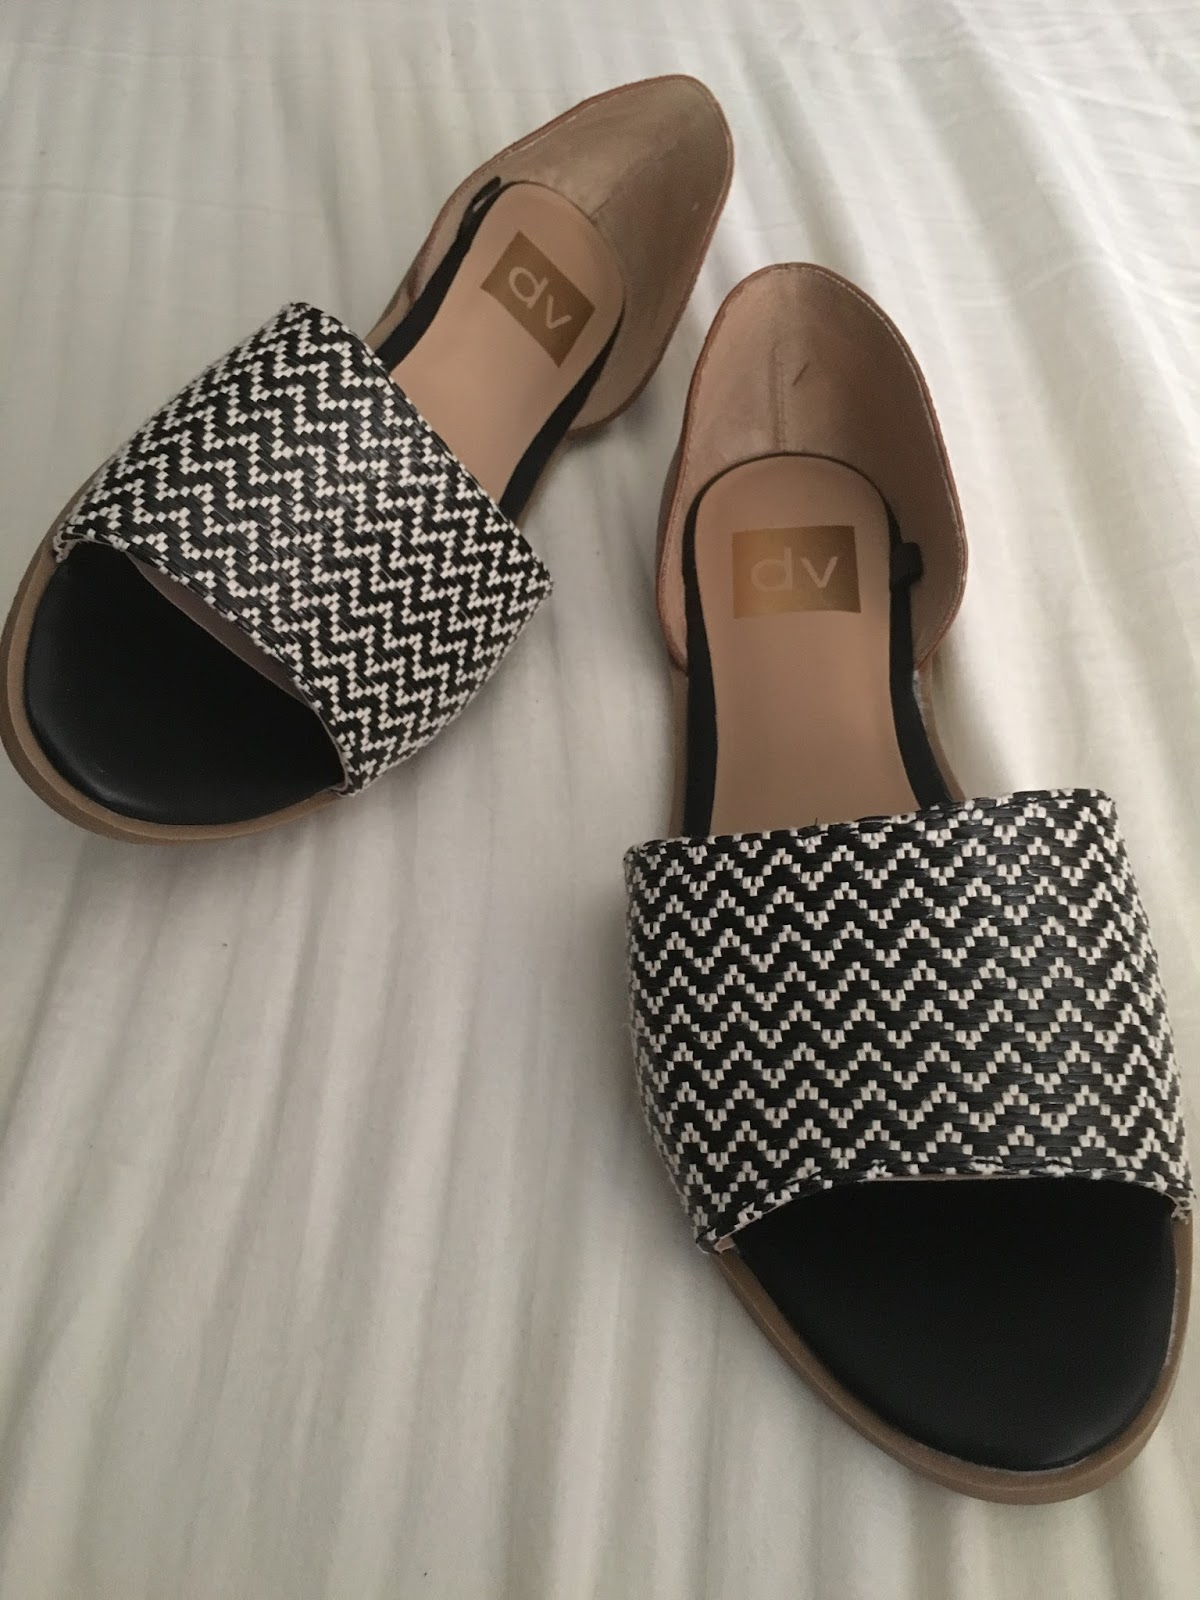 44972d5867fb There are so many styles from sandals to booties! Here are the DV for Target  shoes compared to the original Dolce Vita designs. Click any of the photos  to ...